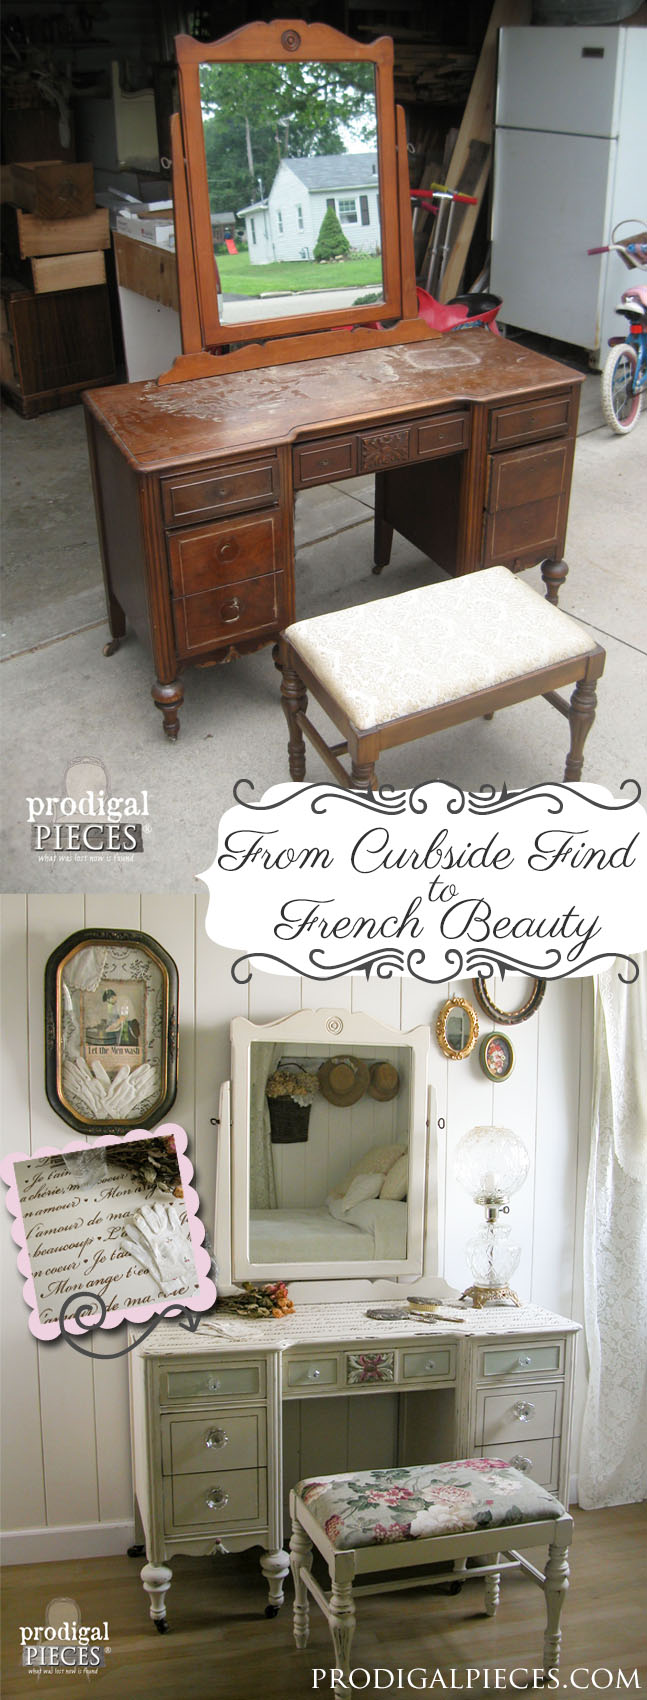 Curbside Vanity Becomes French Beauty | Prodigal Pieces | www.prodigalpieces.com